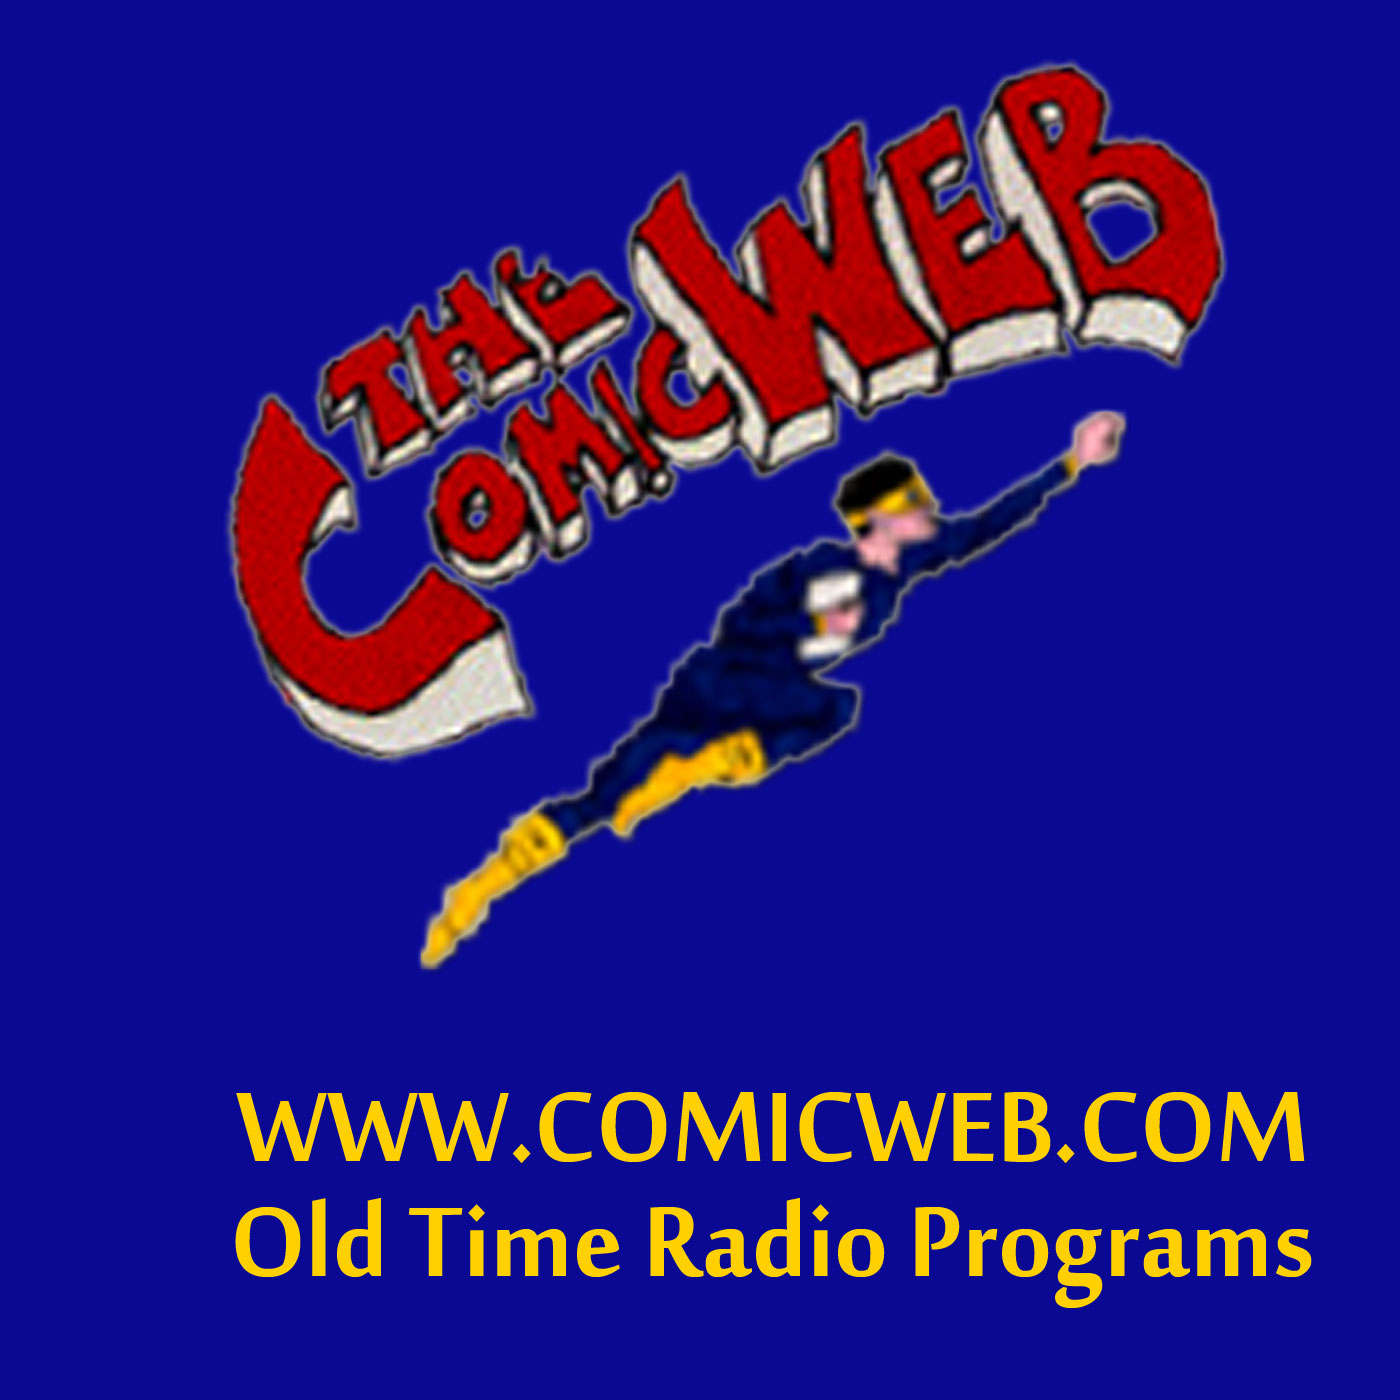 ComicWeb.com's Old Time Radio Programs